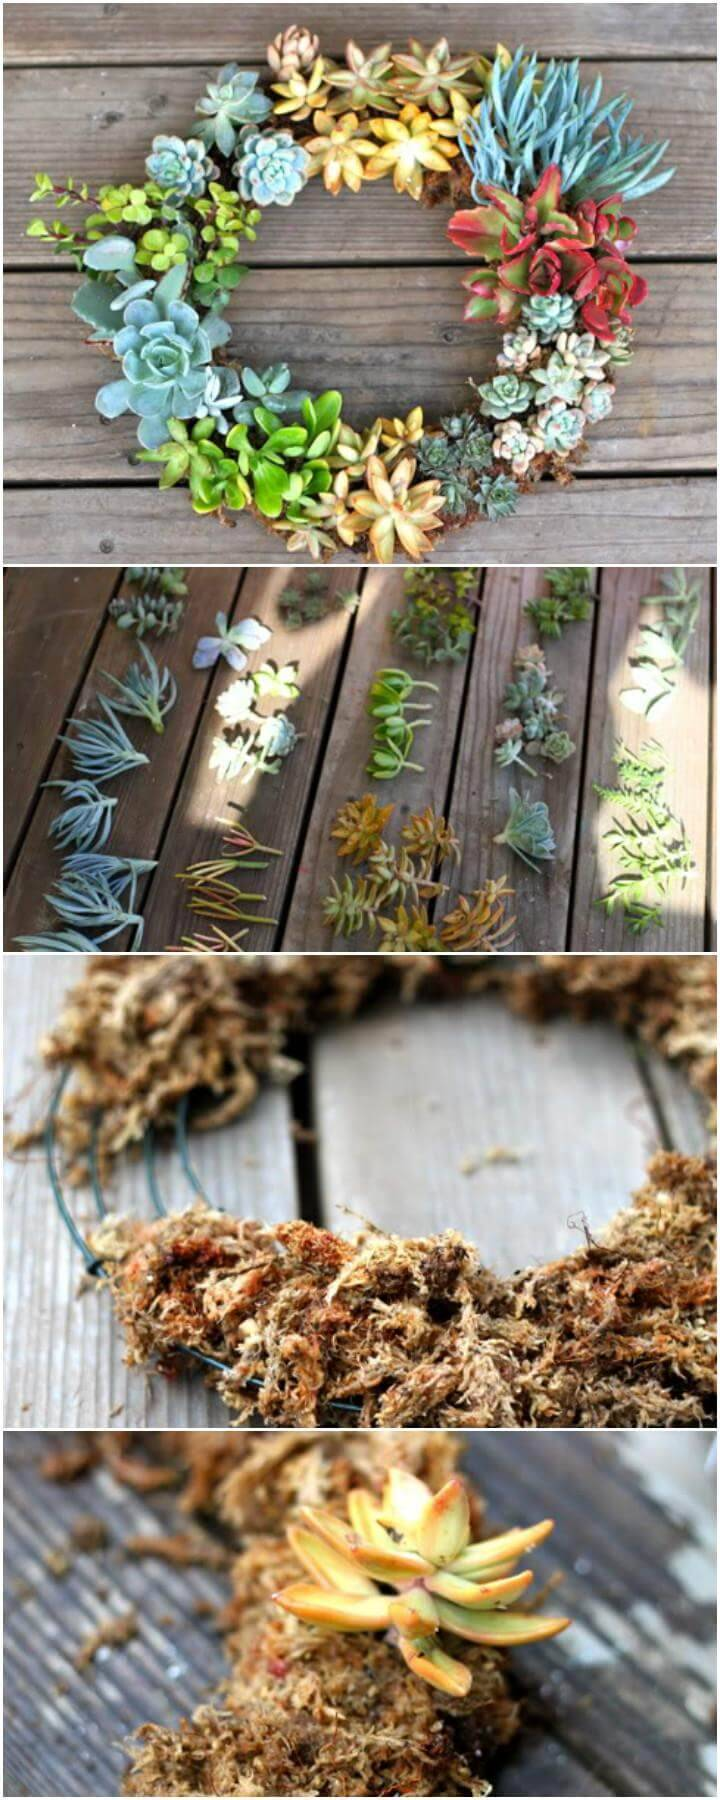 DIY Gorgeous Living Succulent Wreath